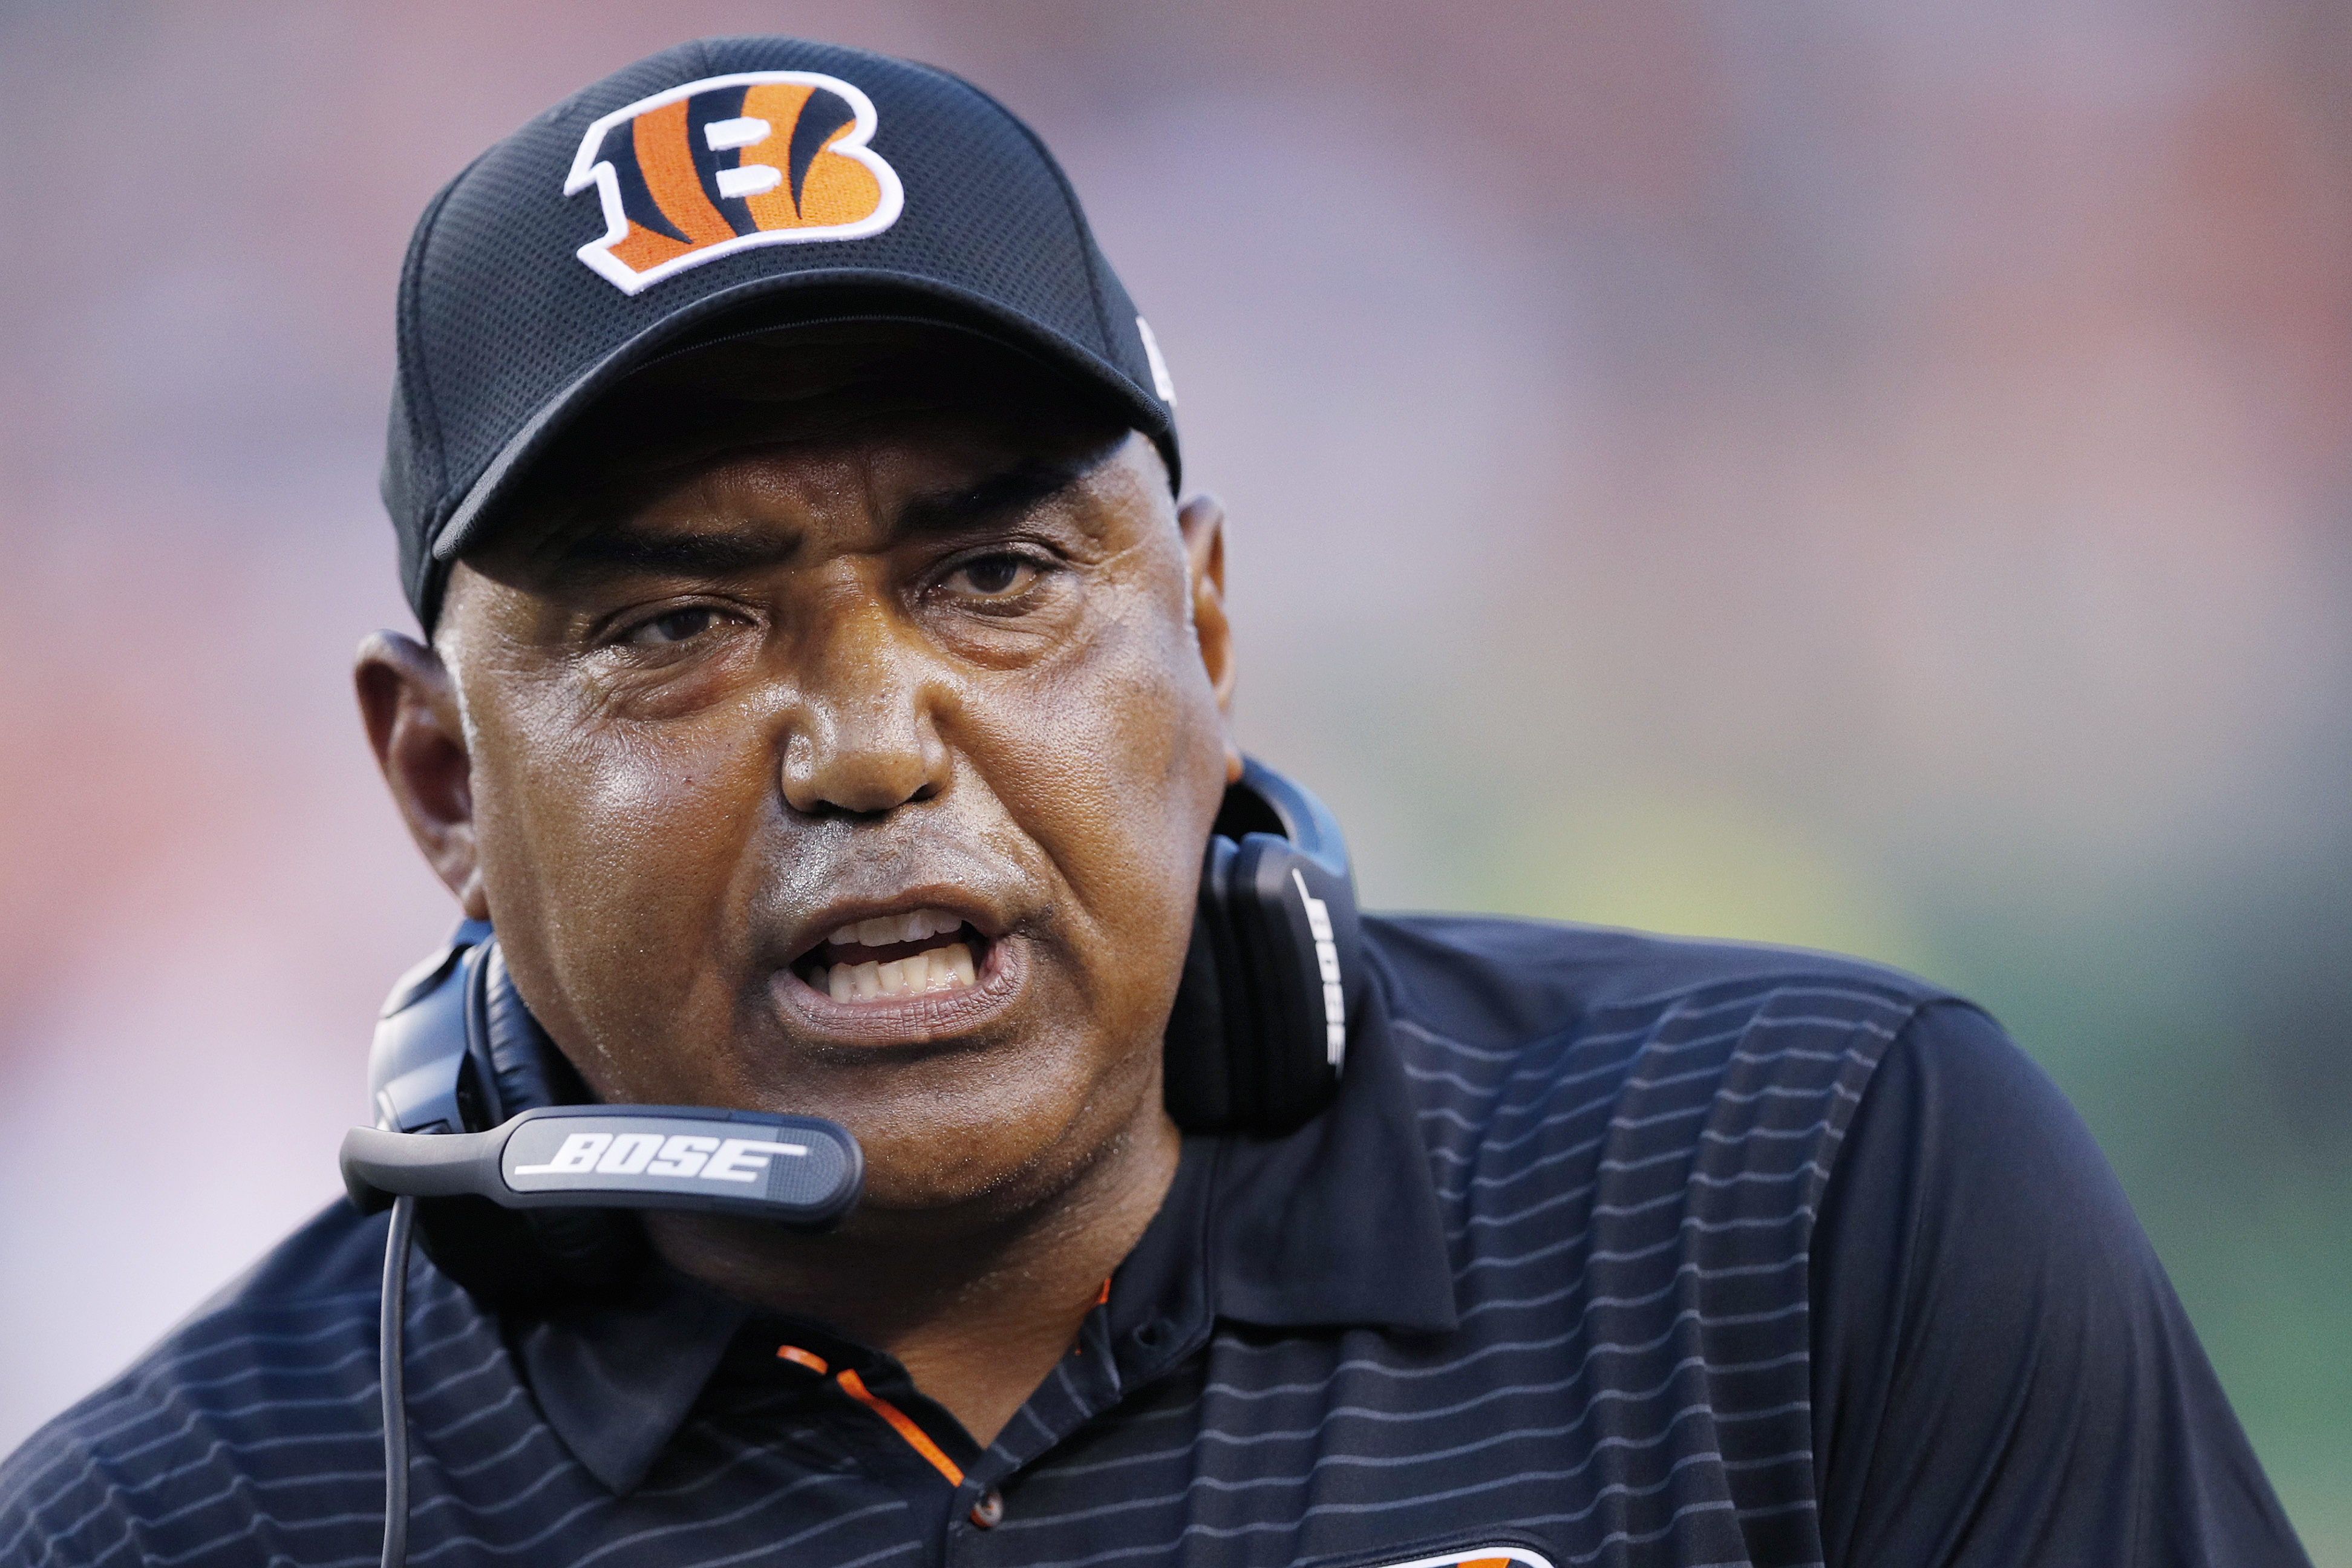 Cincinnati Bengals coach Marvin Lewis plans to leave team after season